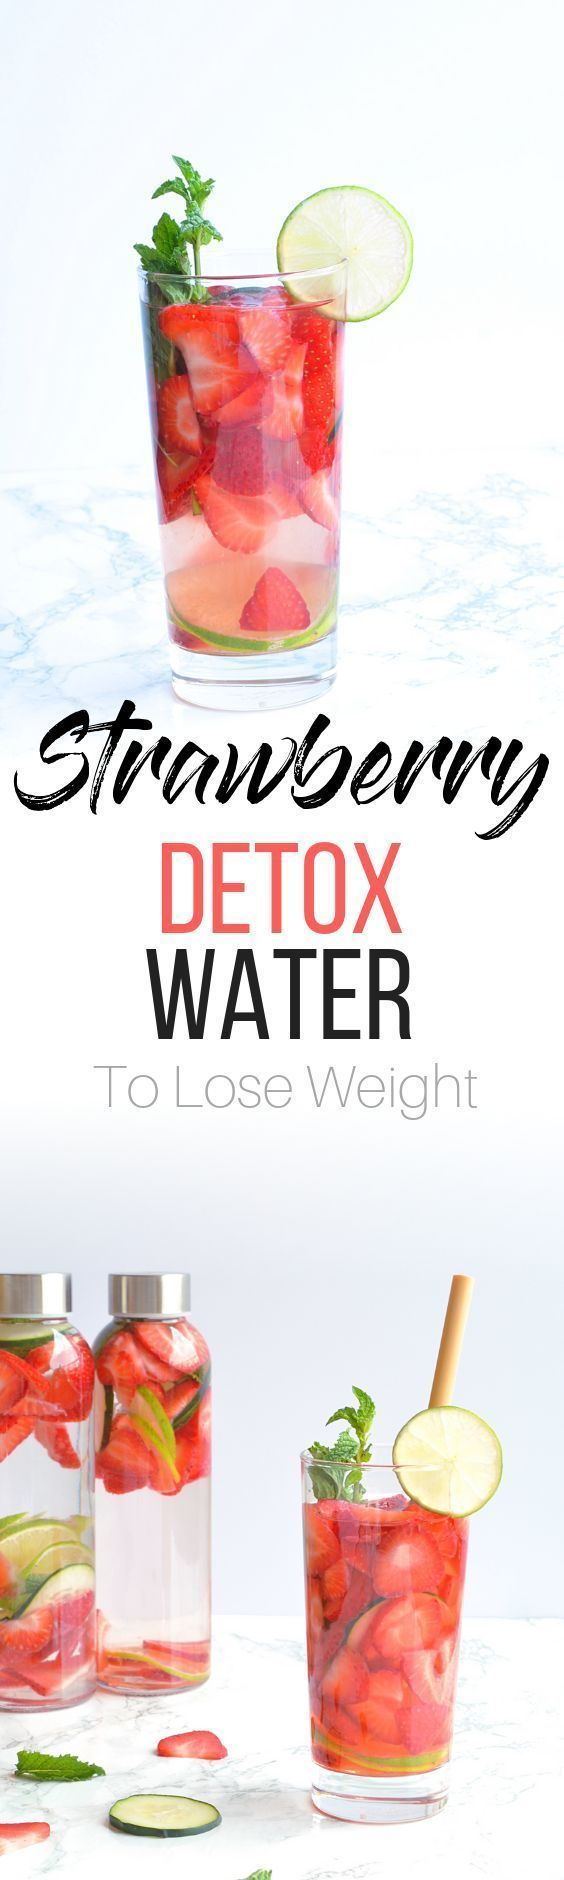 Strawberry Detox Water recipe to help you lose Wei